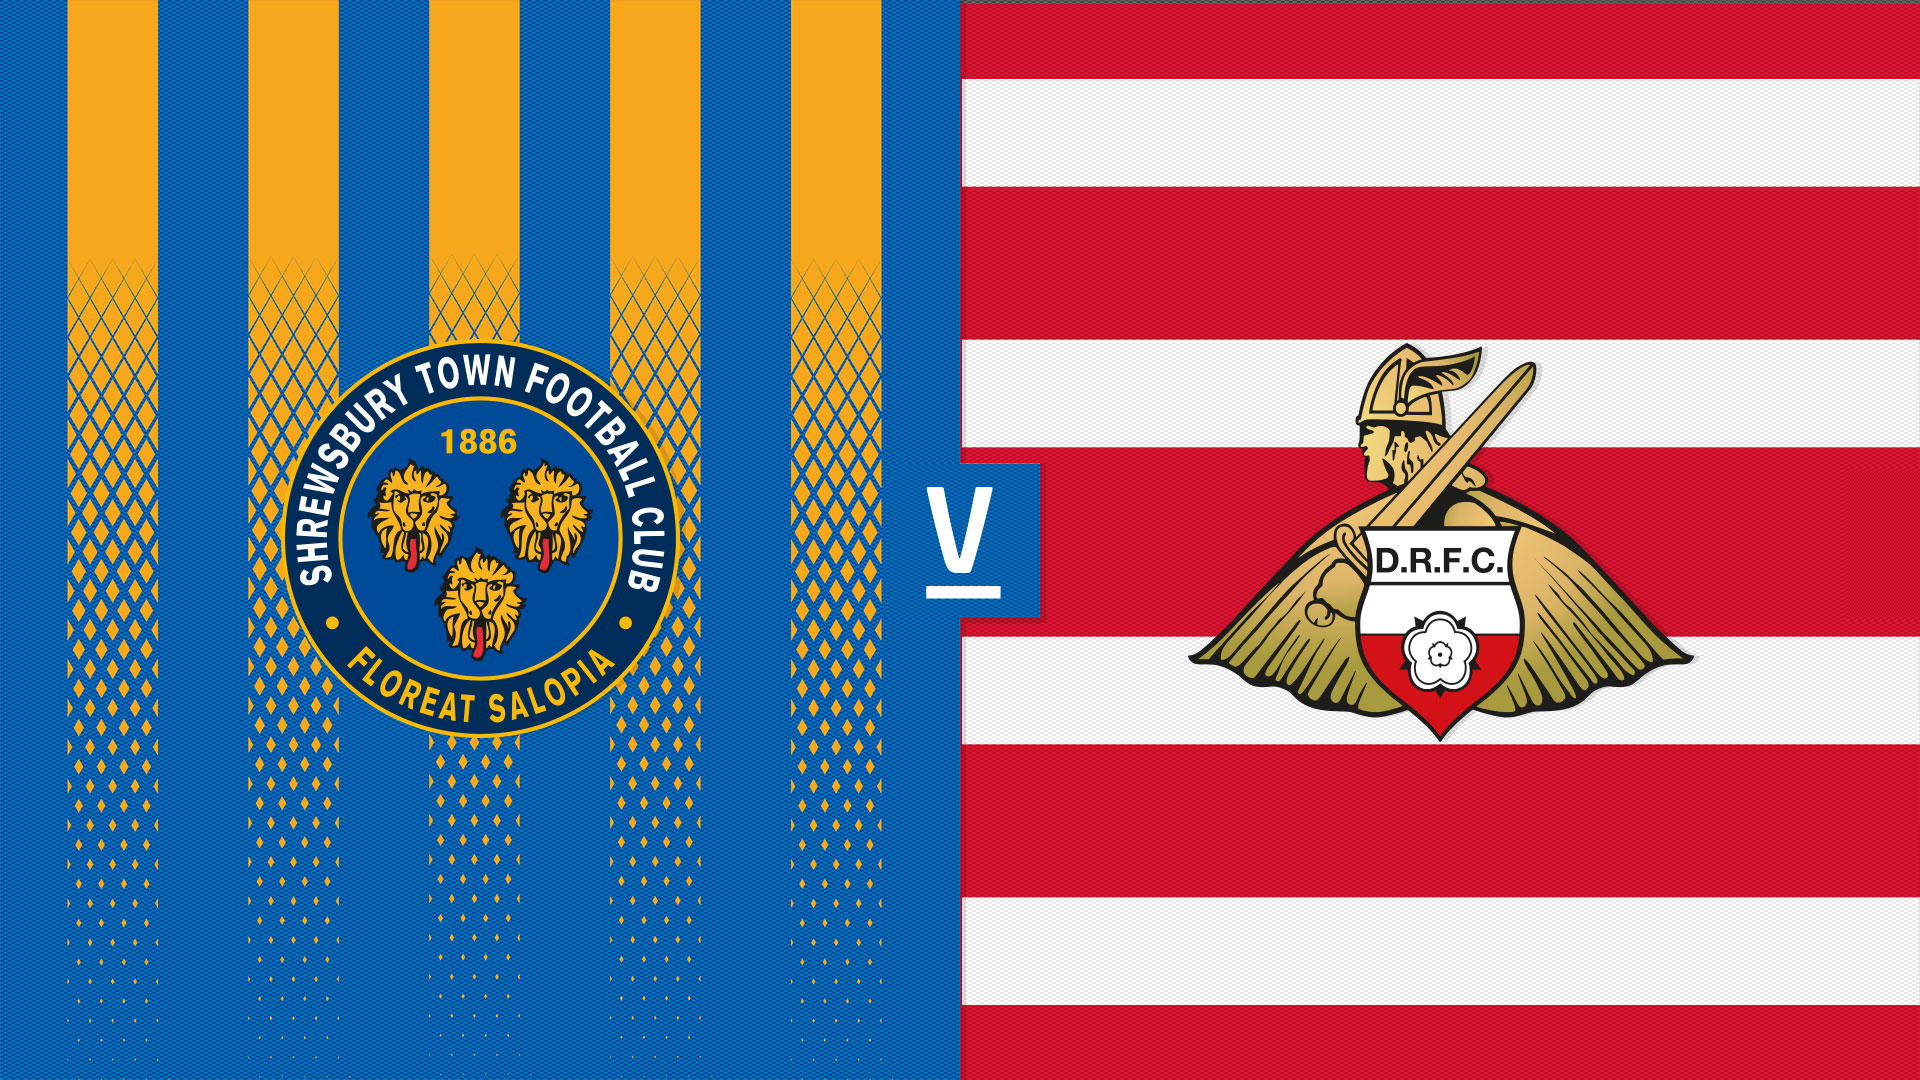 Shrewsbury Town Vs Doncaster Rovers On 17 Apr 21 Match Centre Doncaster Rovers